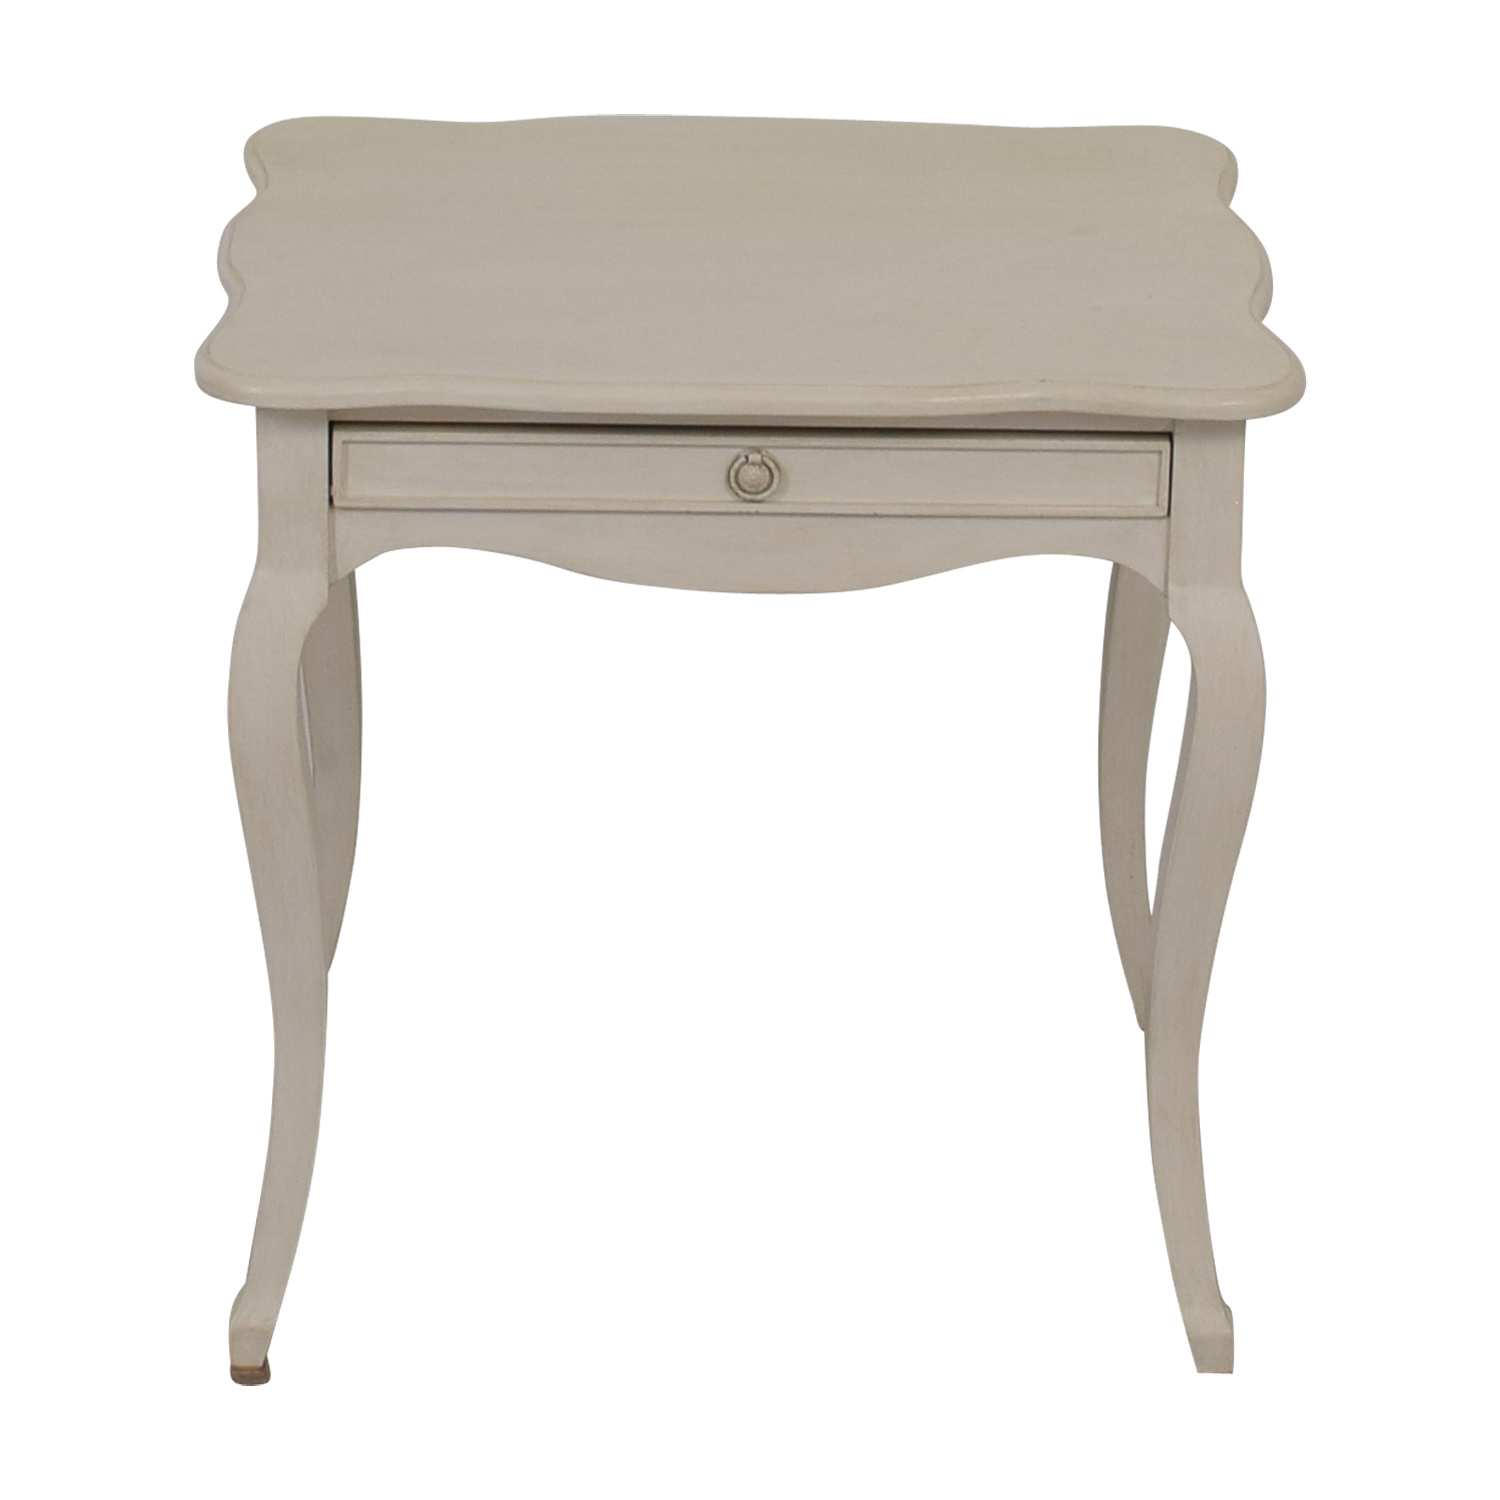 Off White Single-Drawer Night Table dimensions